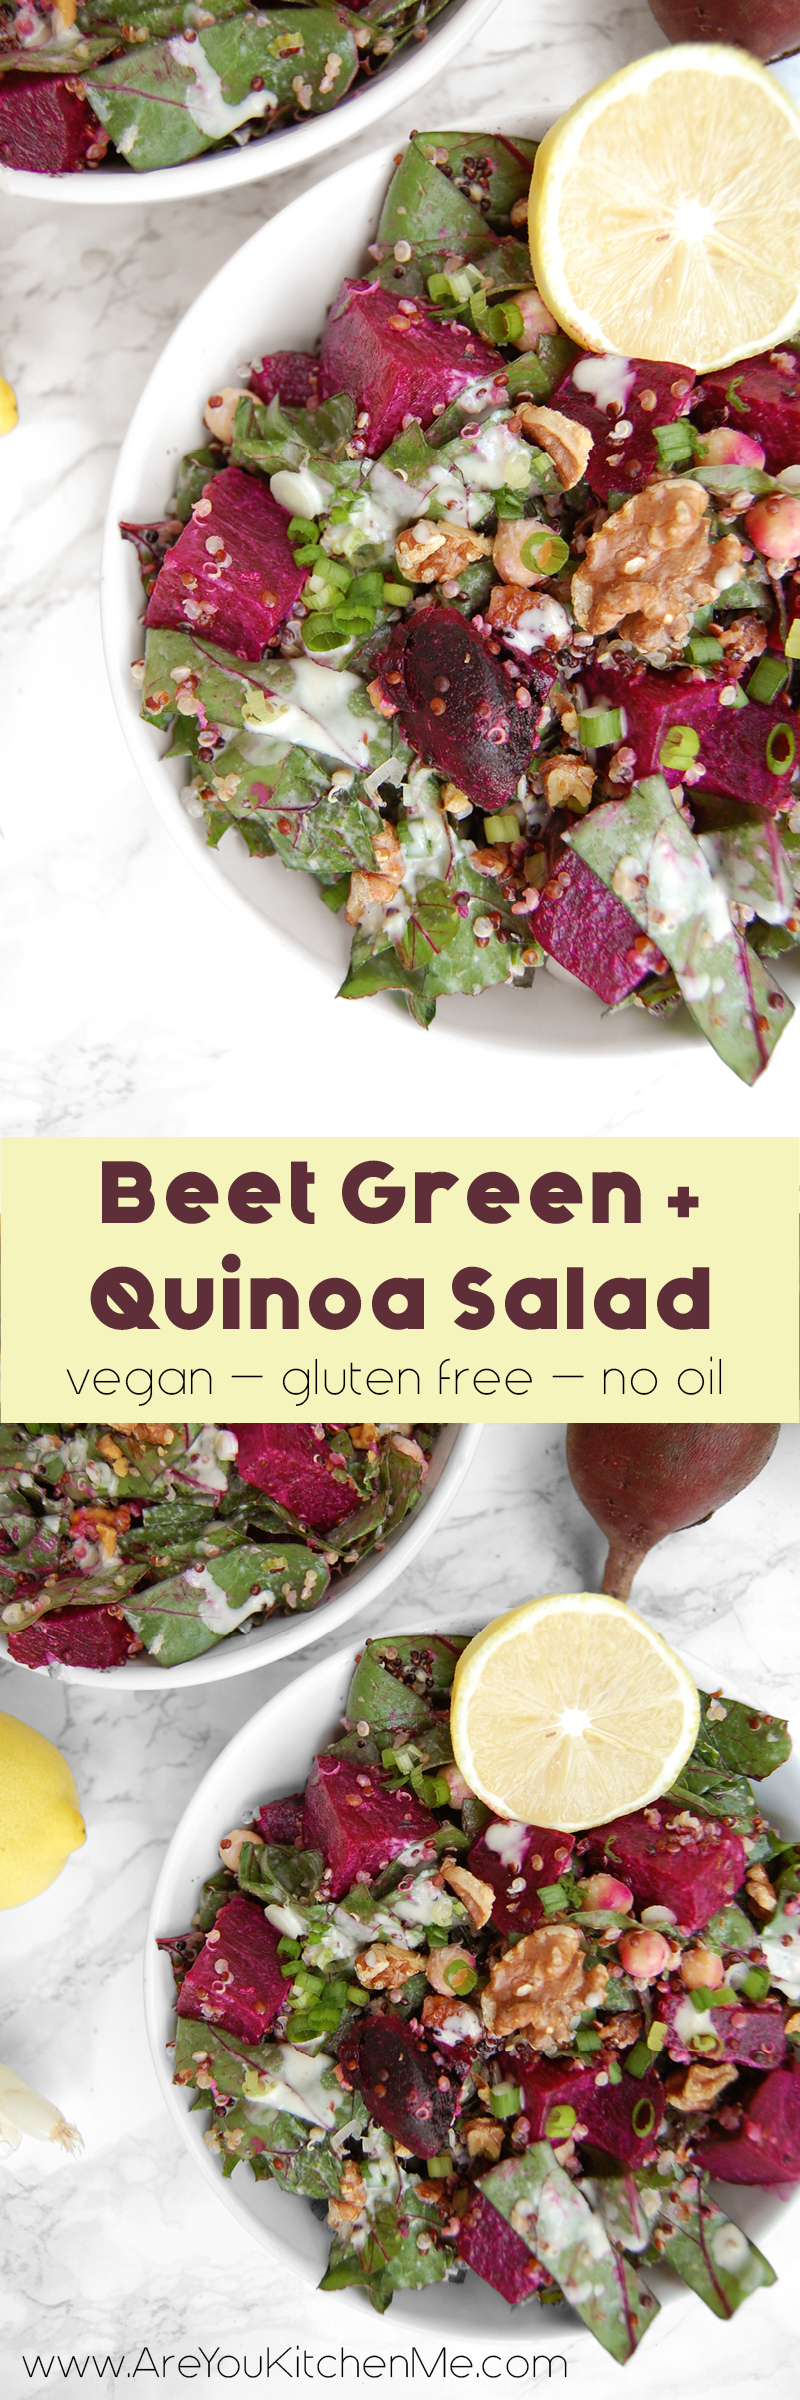 Beet Green & Quinoa Salad - Are You Kitchen Me?!